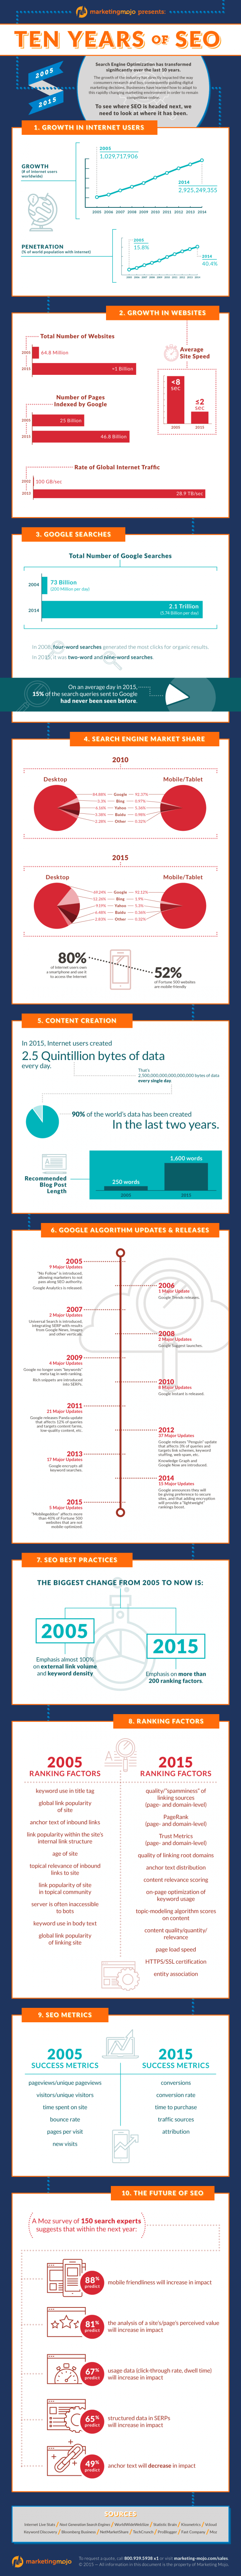 Infographic-Ways-SEO-Has-Changed-10-years